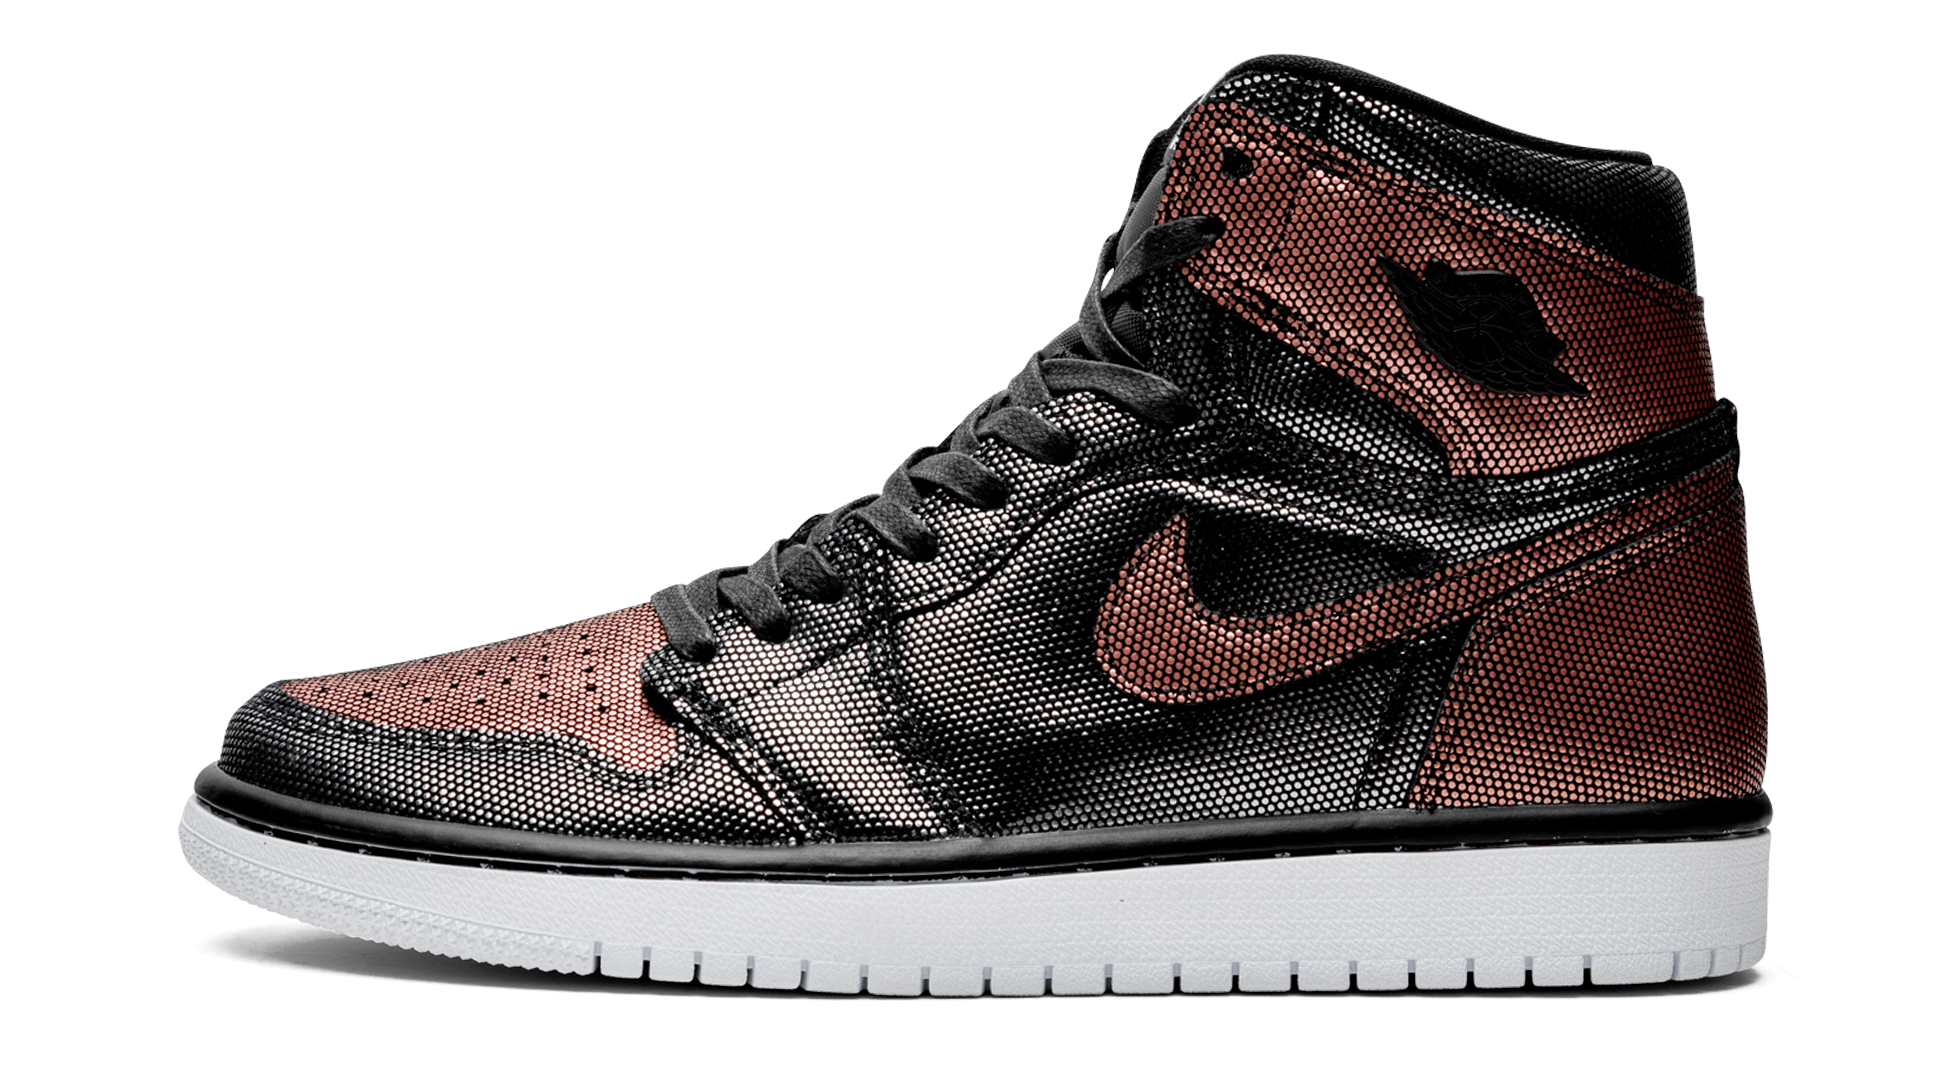 Women's Exclusive Air Jordan 1 'Fearless' Is Dropping This Month